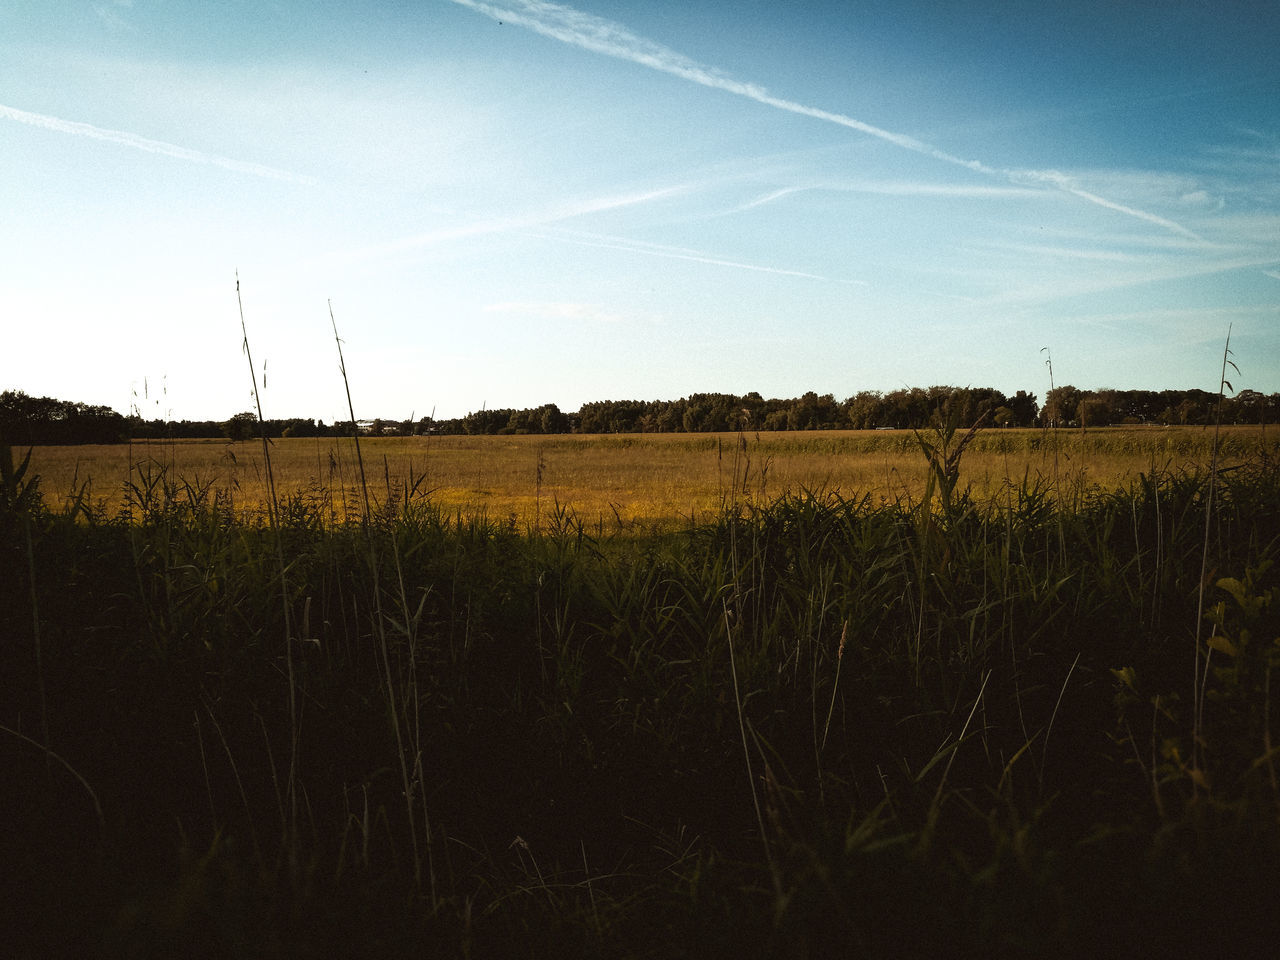 countryside. Beauty In Nature Day Field Grass Growth Landscape Nature No People Outdoors Scenics Sky Tranquil Scene Tranquility Tree